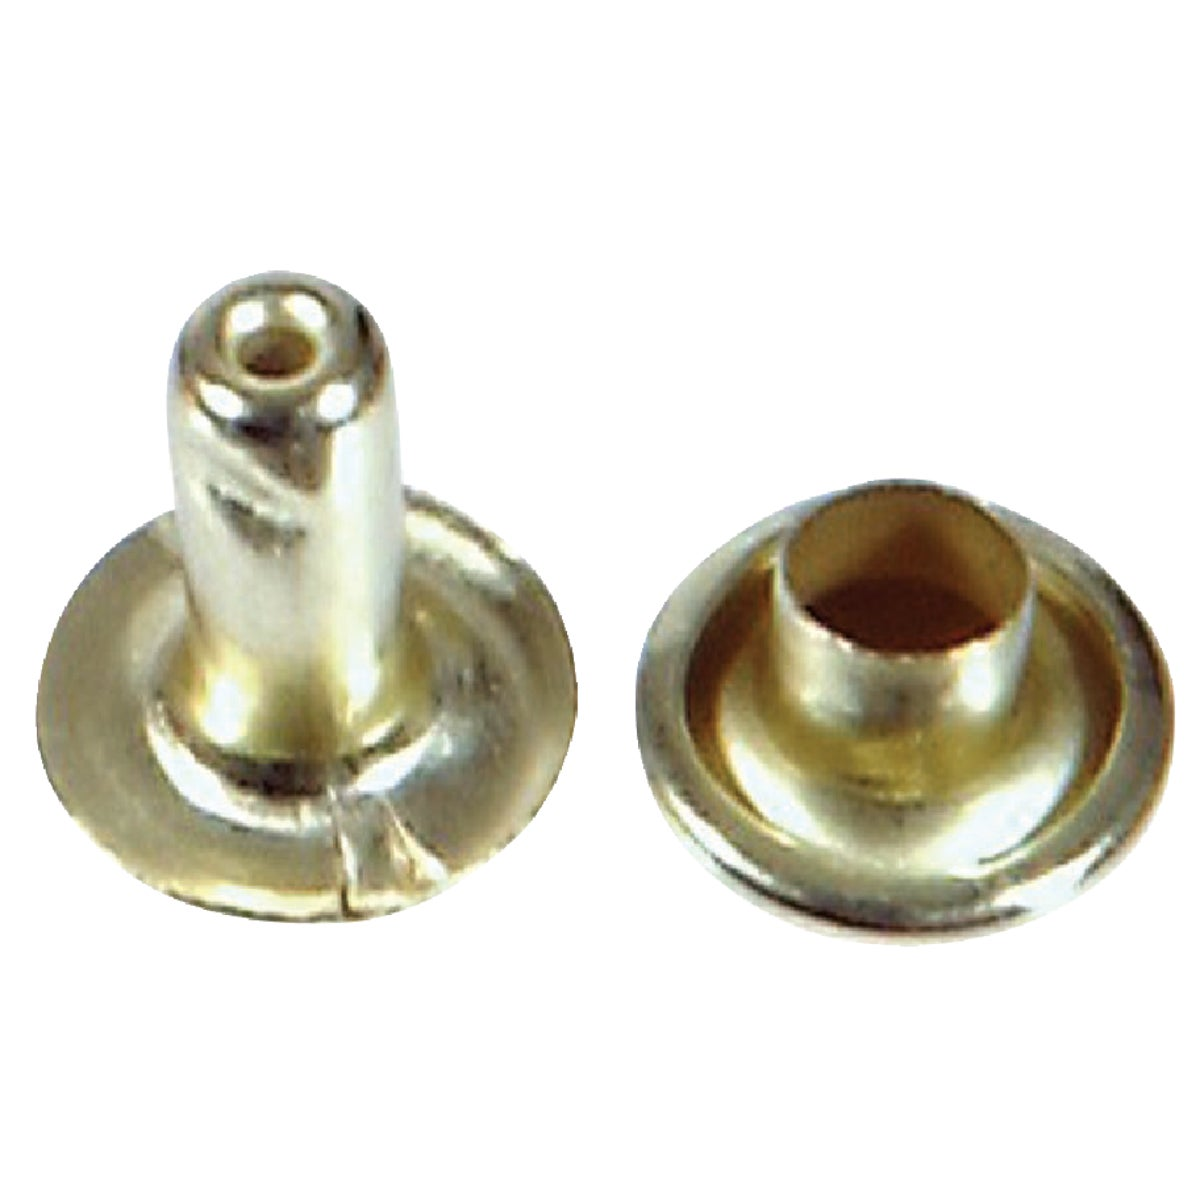 LRG BRASS PLATED RIVET - 8004 by Hillman Fastener